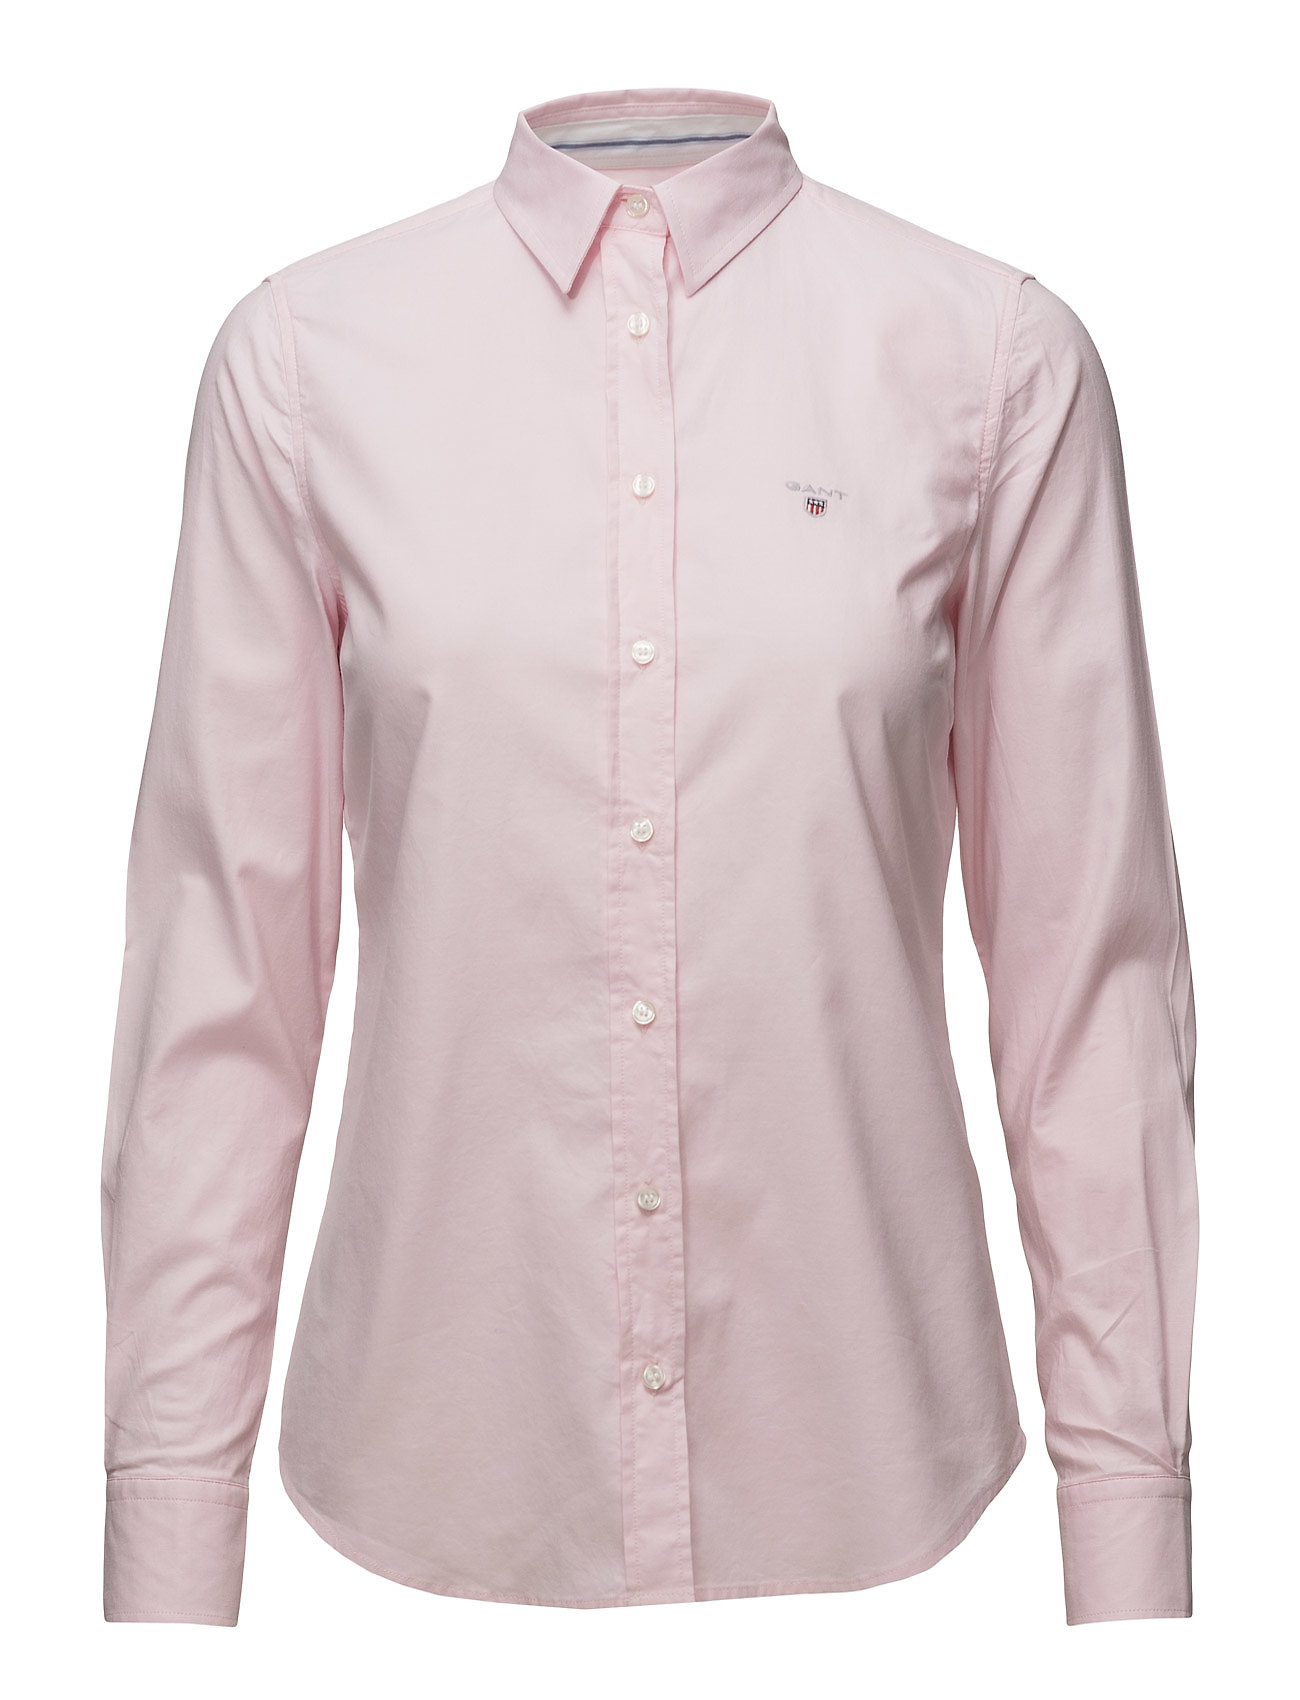 Gant STRETCH OXFORD SOLID - LIGHT PINK